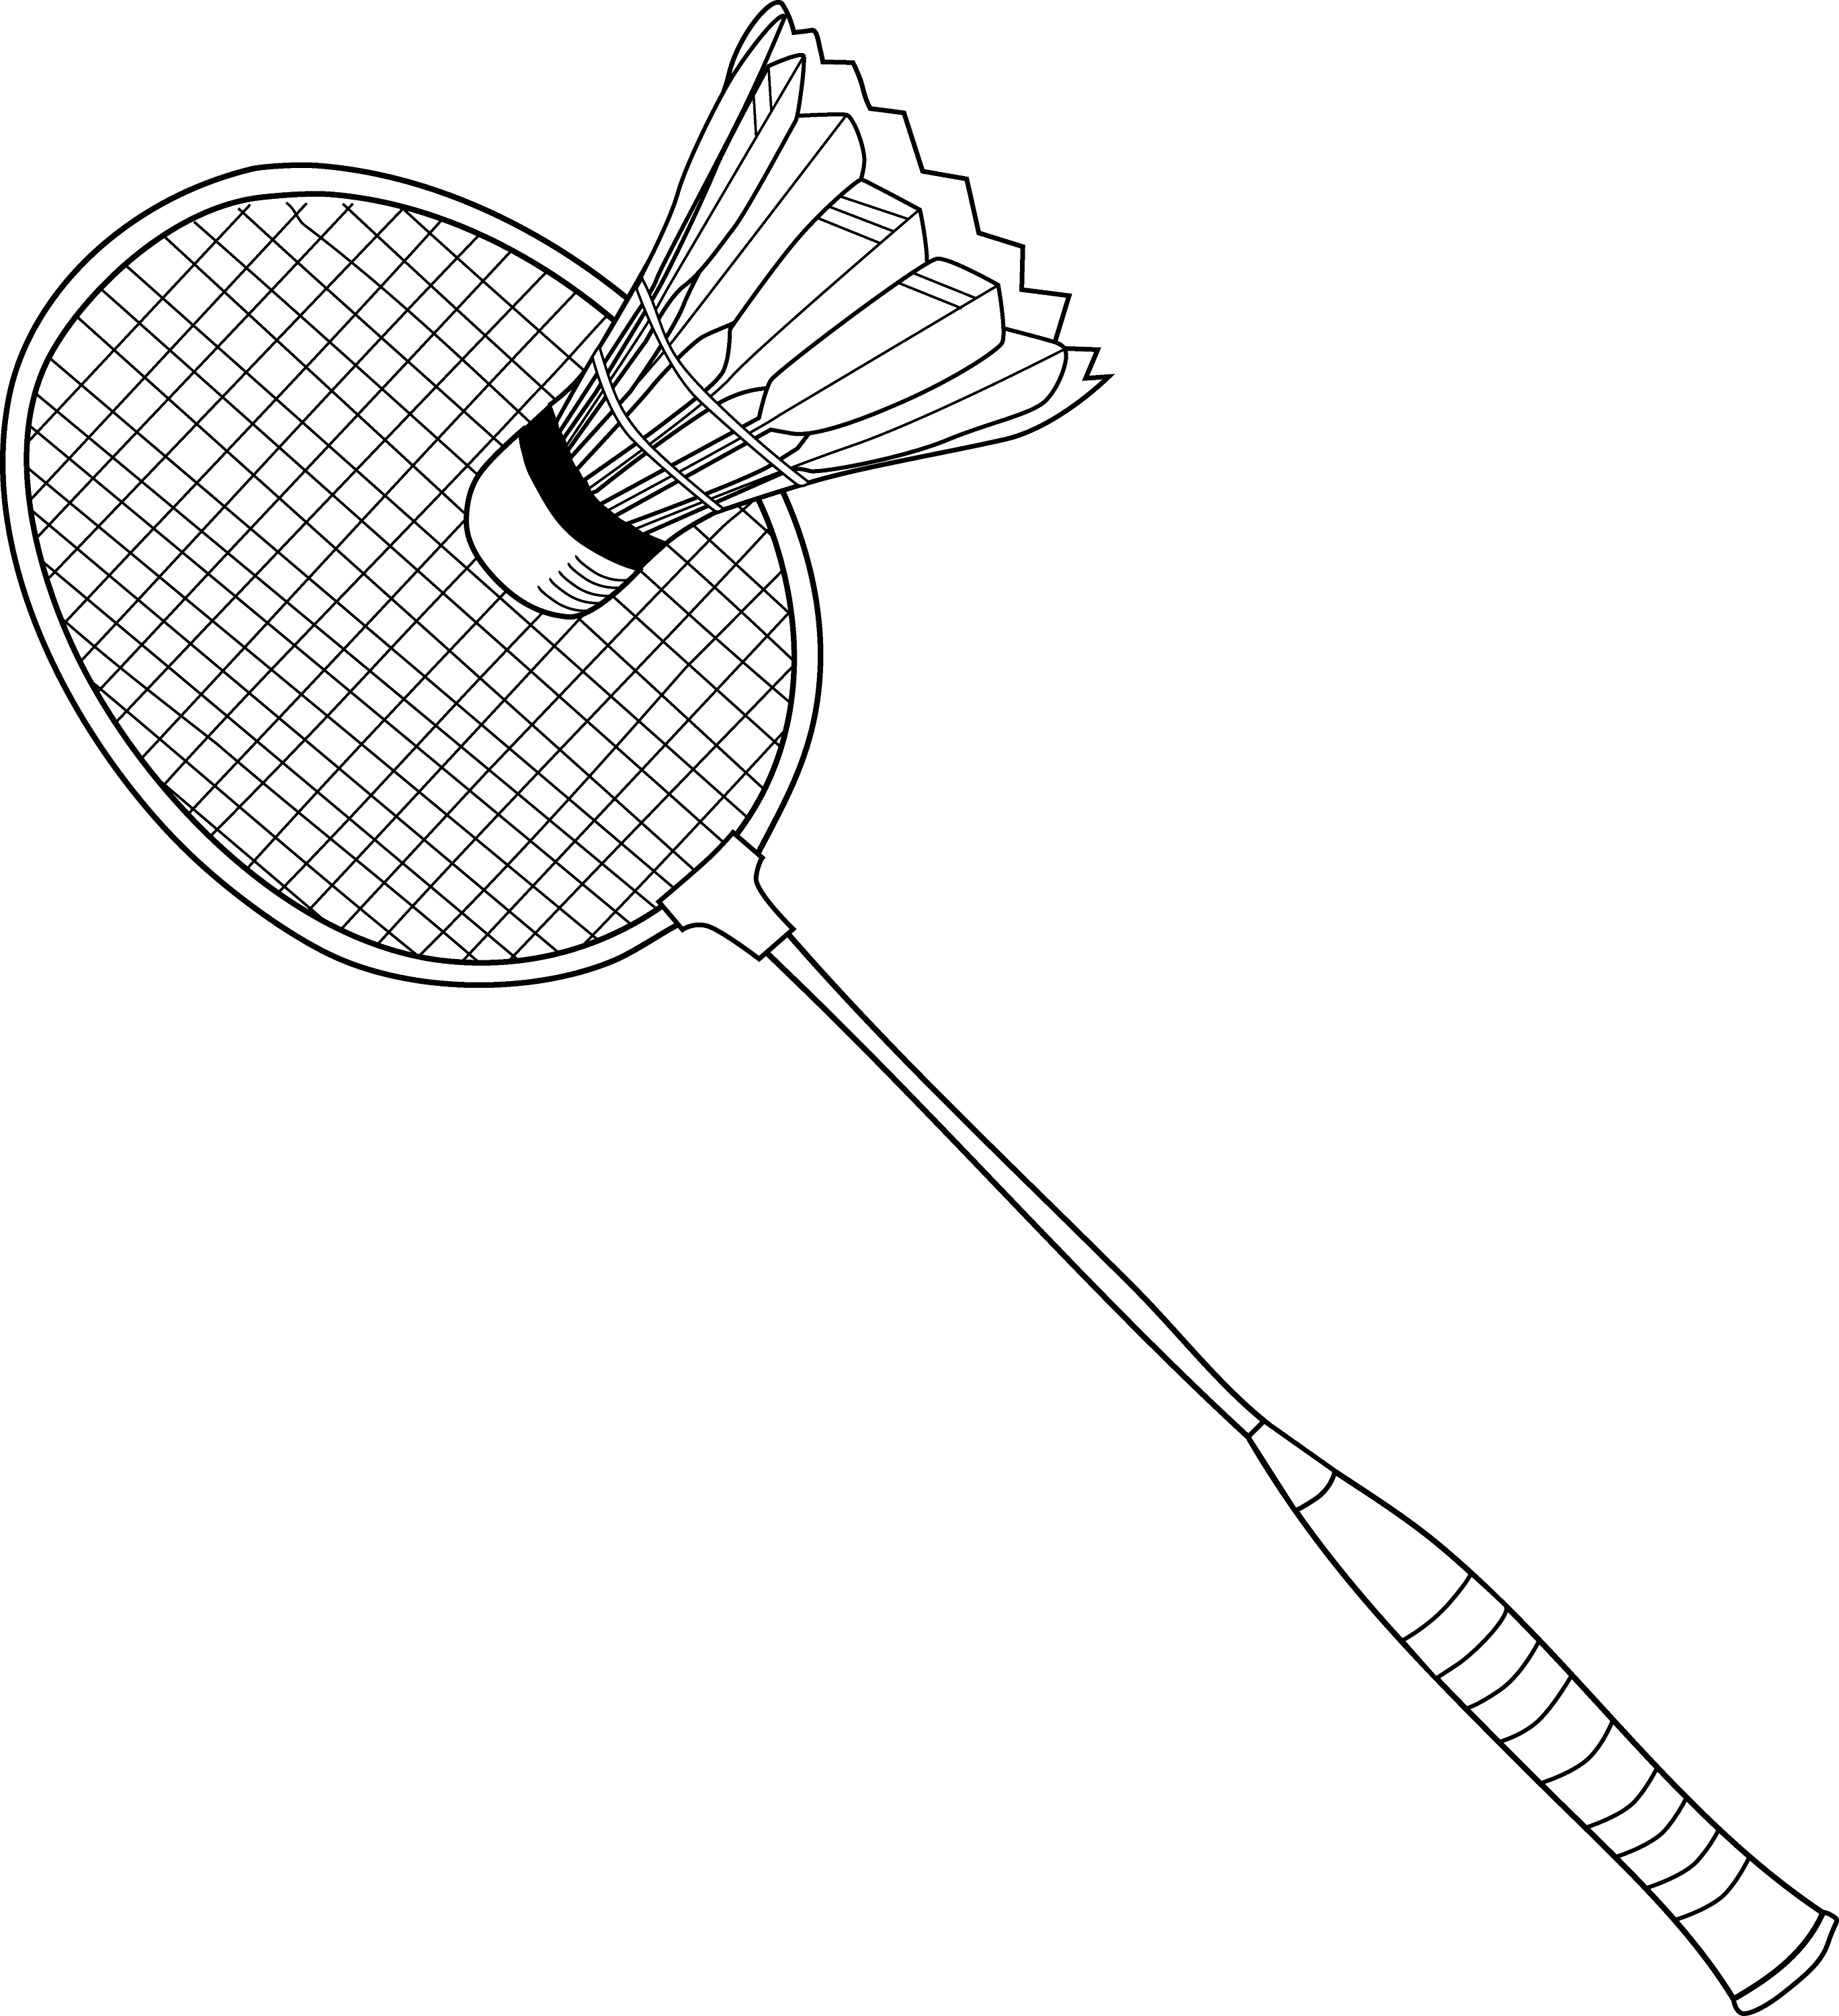 Badminton racket drawing the image kid for Badminton coloring pages